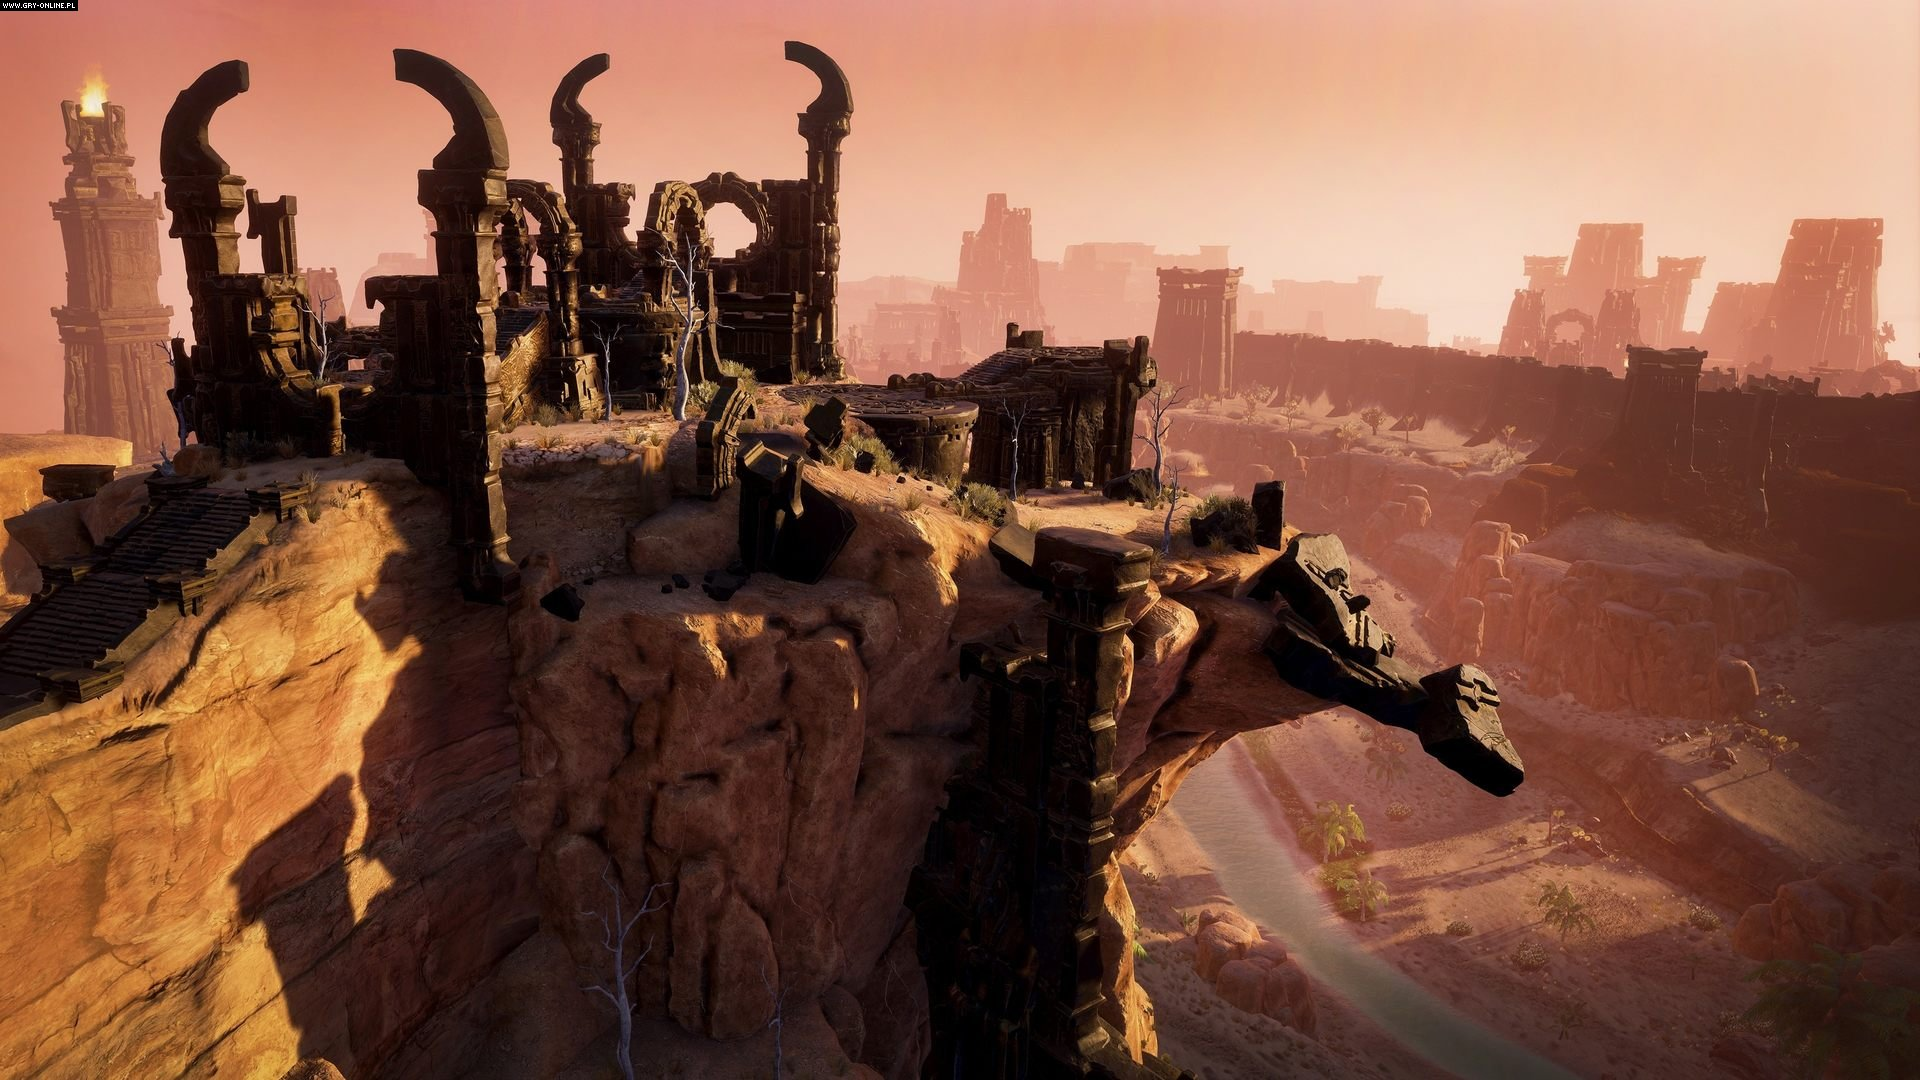 Conan Exiles PC Games Image 55/163, FunCom, Deep Silver / Koch Media